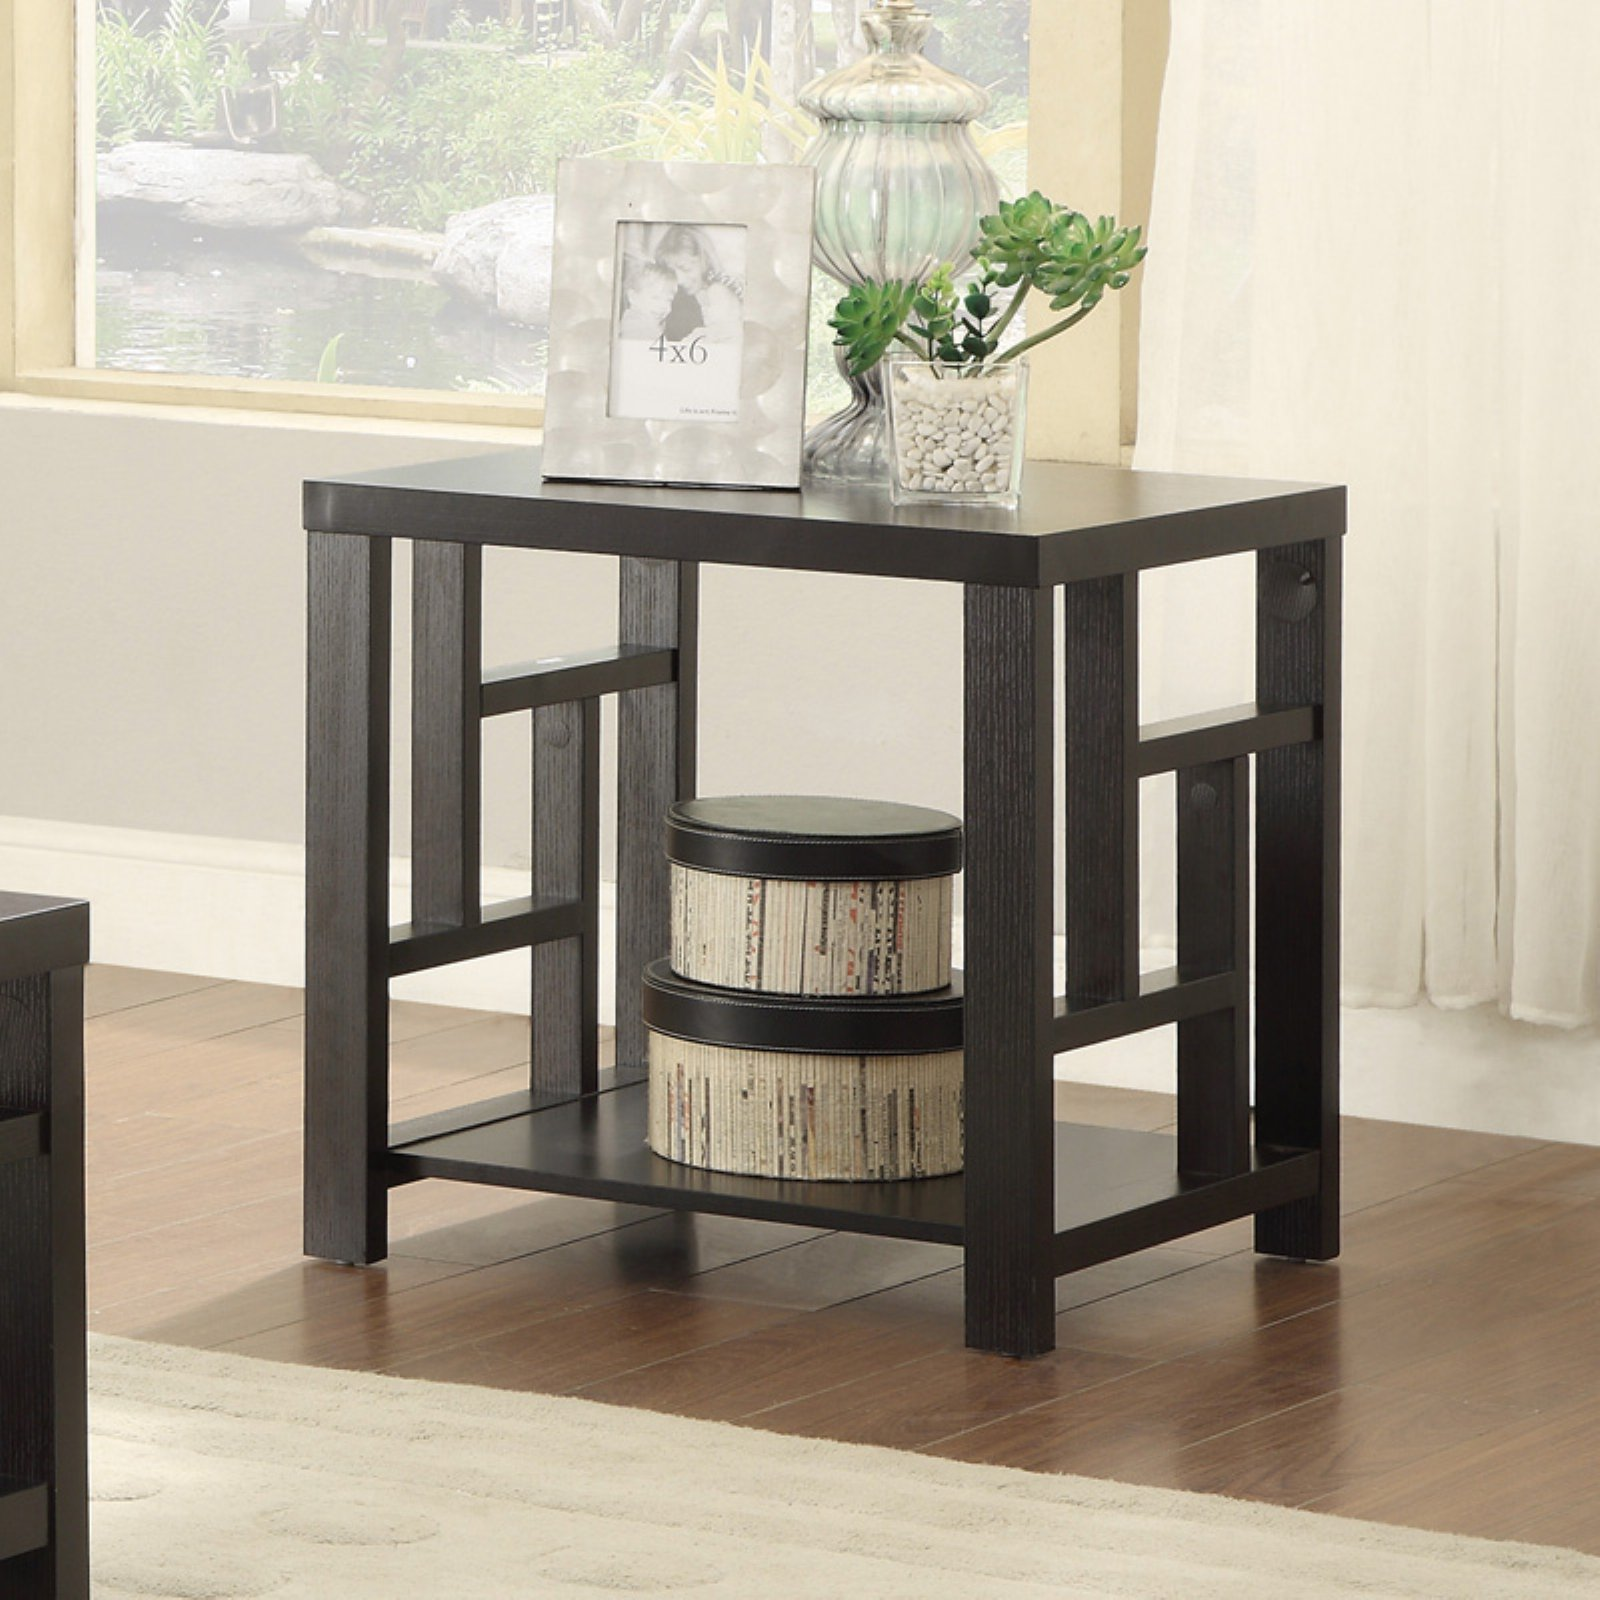 Coaster Transitional End Table, Cappuccino Finish